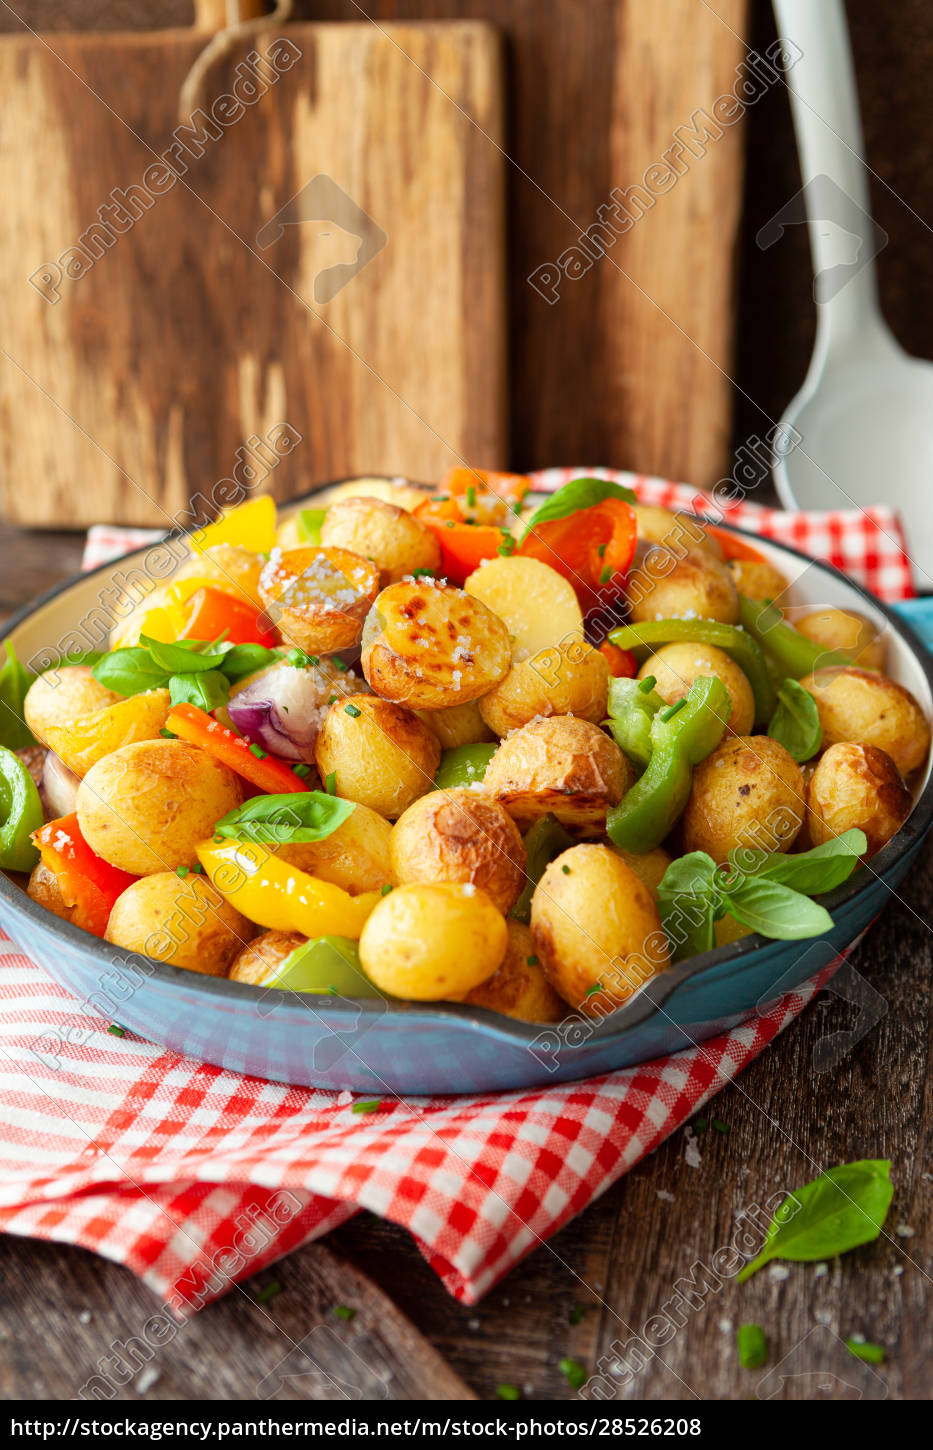 baked, potatoes, with, vegetables - 28526208